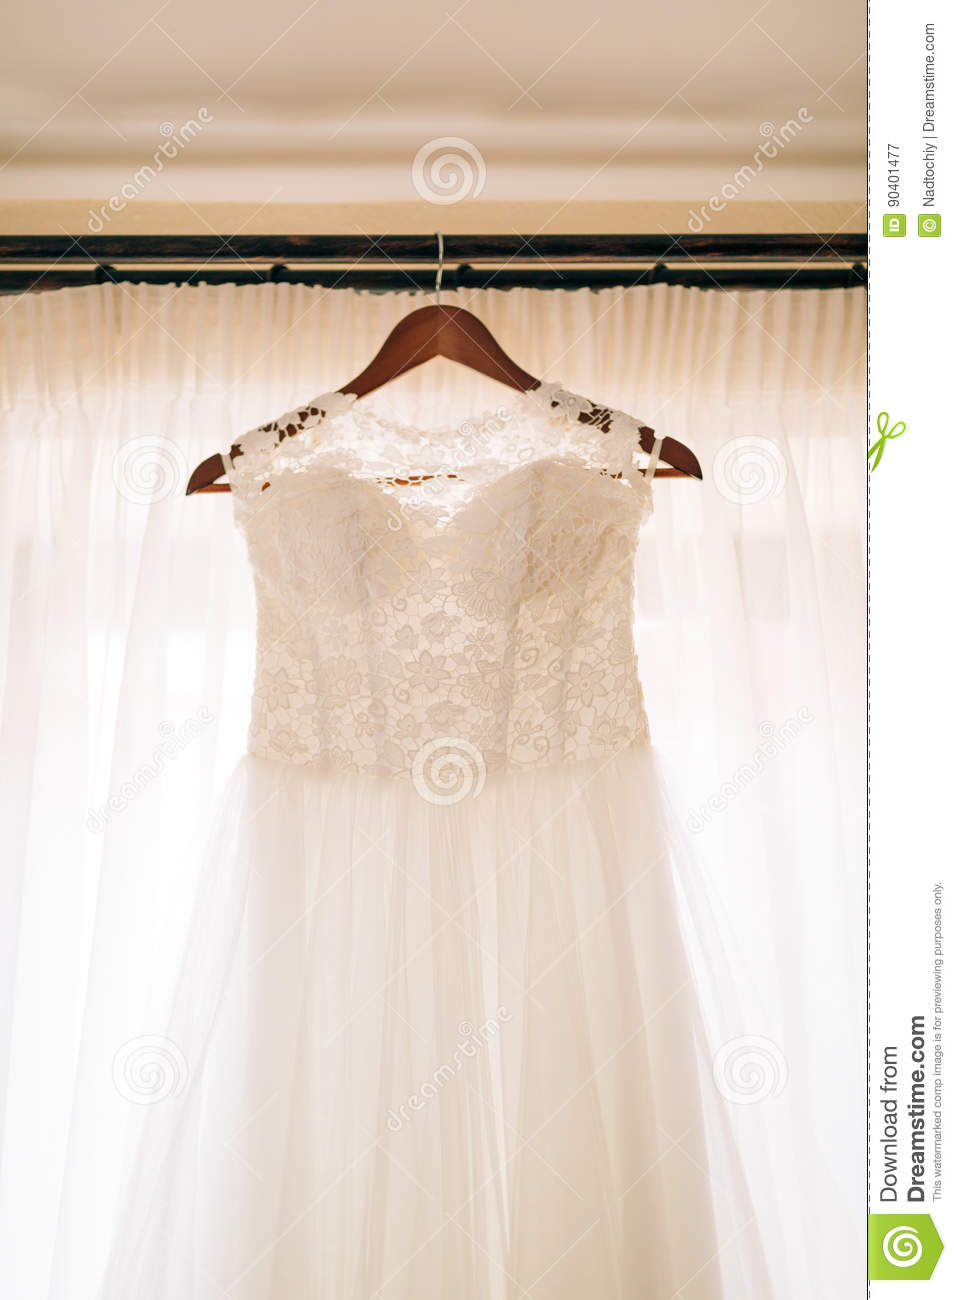 70c5237e3ee The Bride`s Dress Hangs On The Cornice Stock Image - Image of lace ...